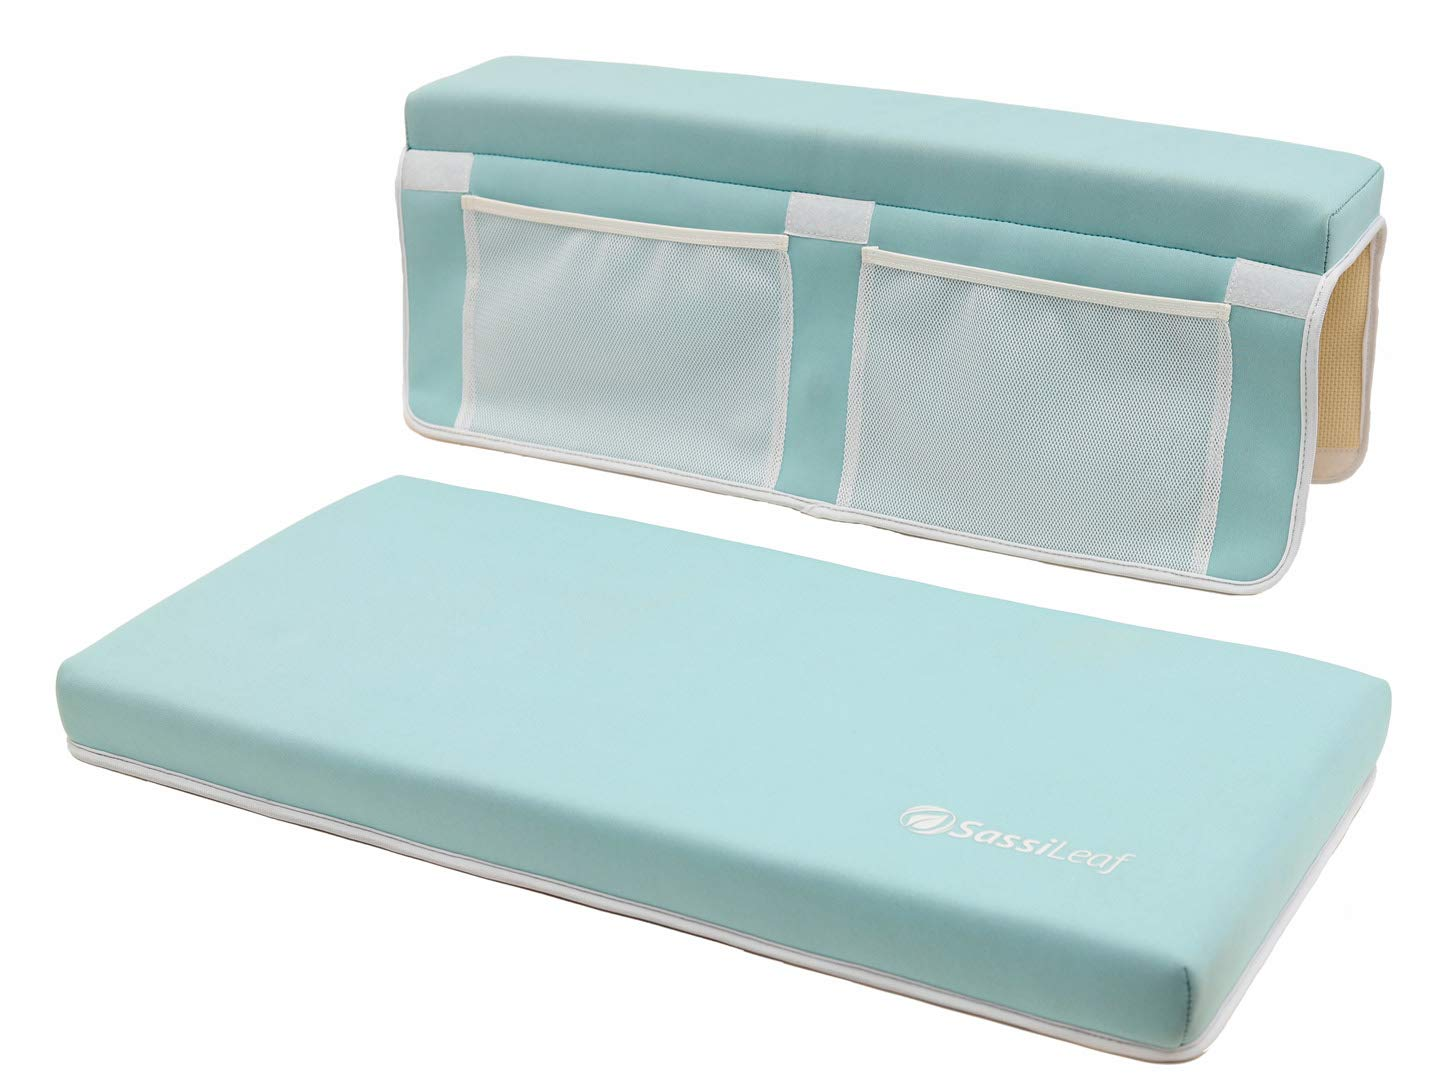 SassiLeaf Bath Kneeler and Elbow Rest - Premium - Extra Wide, Extra Thick Pads - for Baby and Pet Baths (Cool Mint)